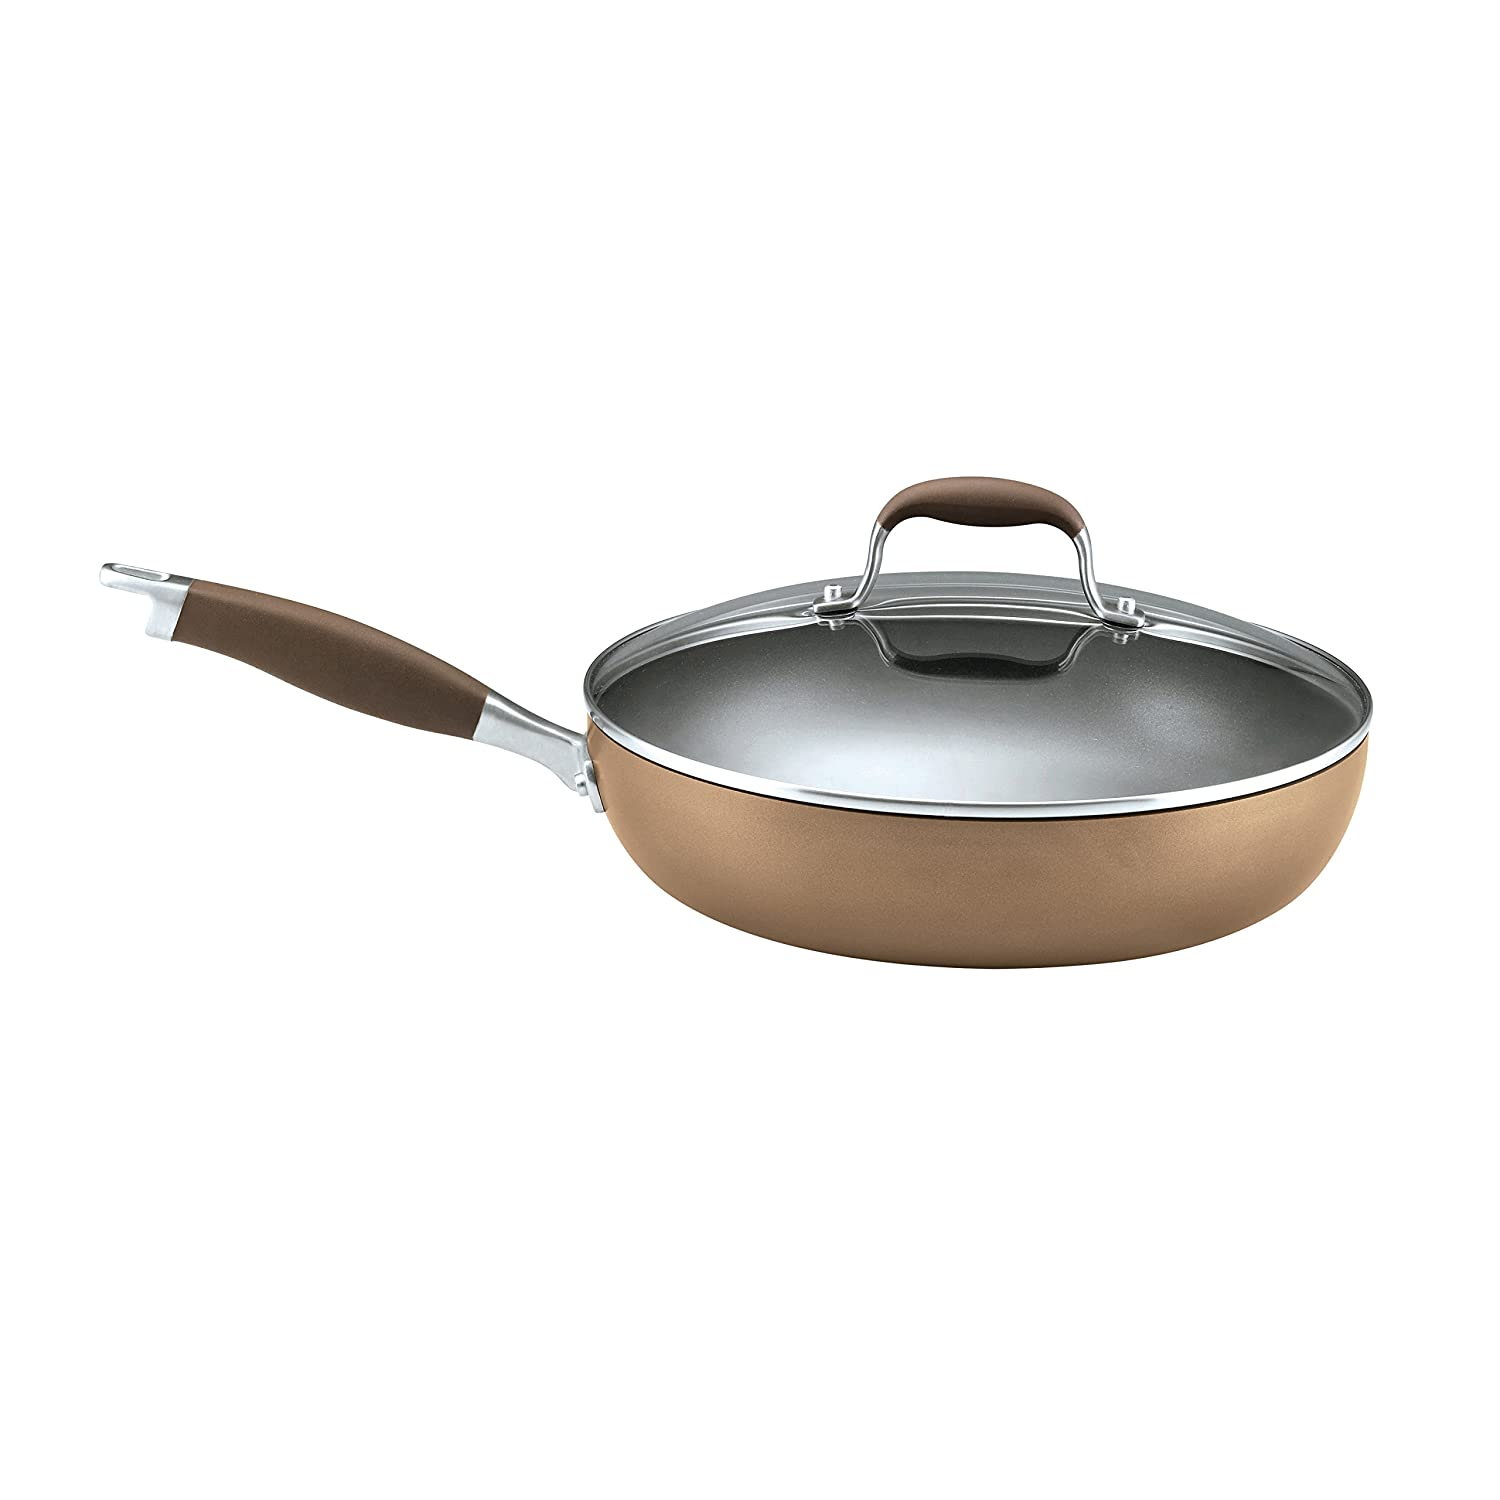 Anolon Advanced Bronze Hard-Anodized Nonstick 12-Inch Covered Deep Skillet 82246